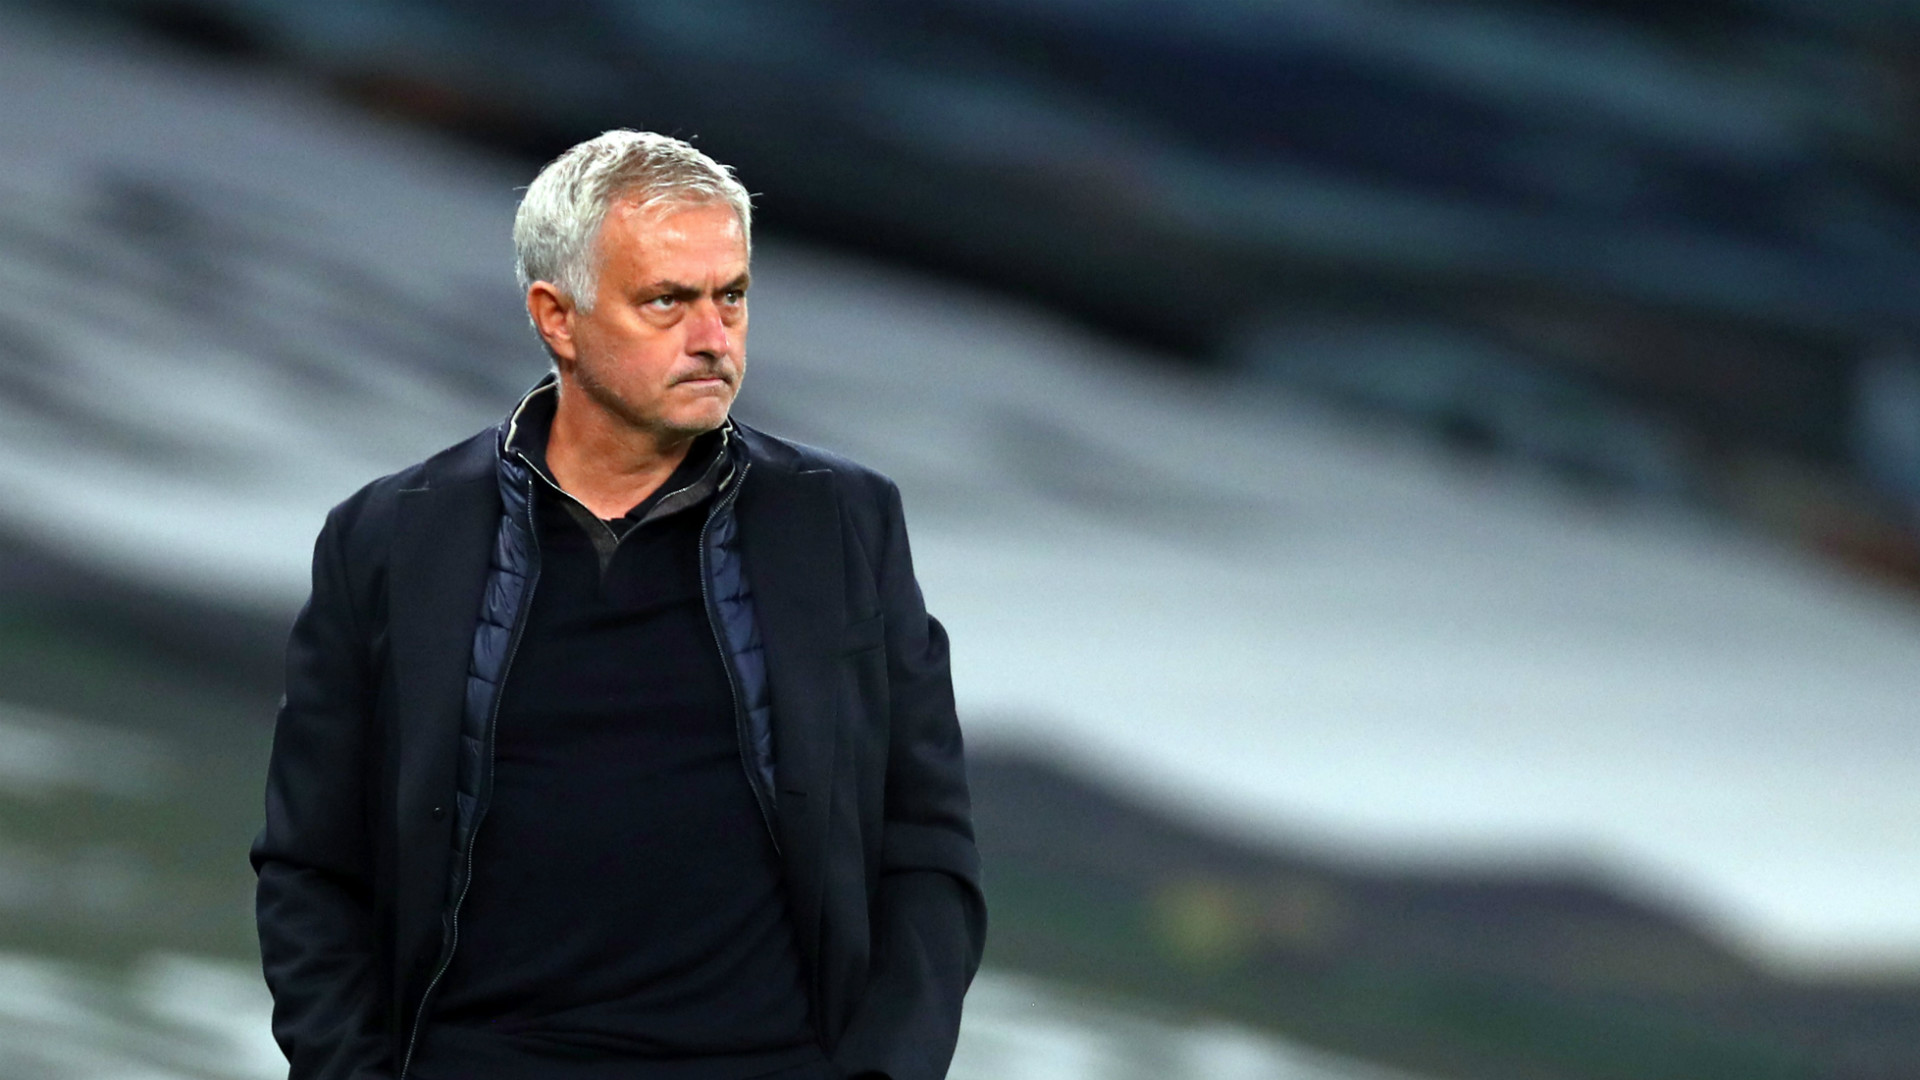 Mourinho attacks Premier League managers for touchline antics and insists he is 'a great example of good behaviour'